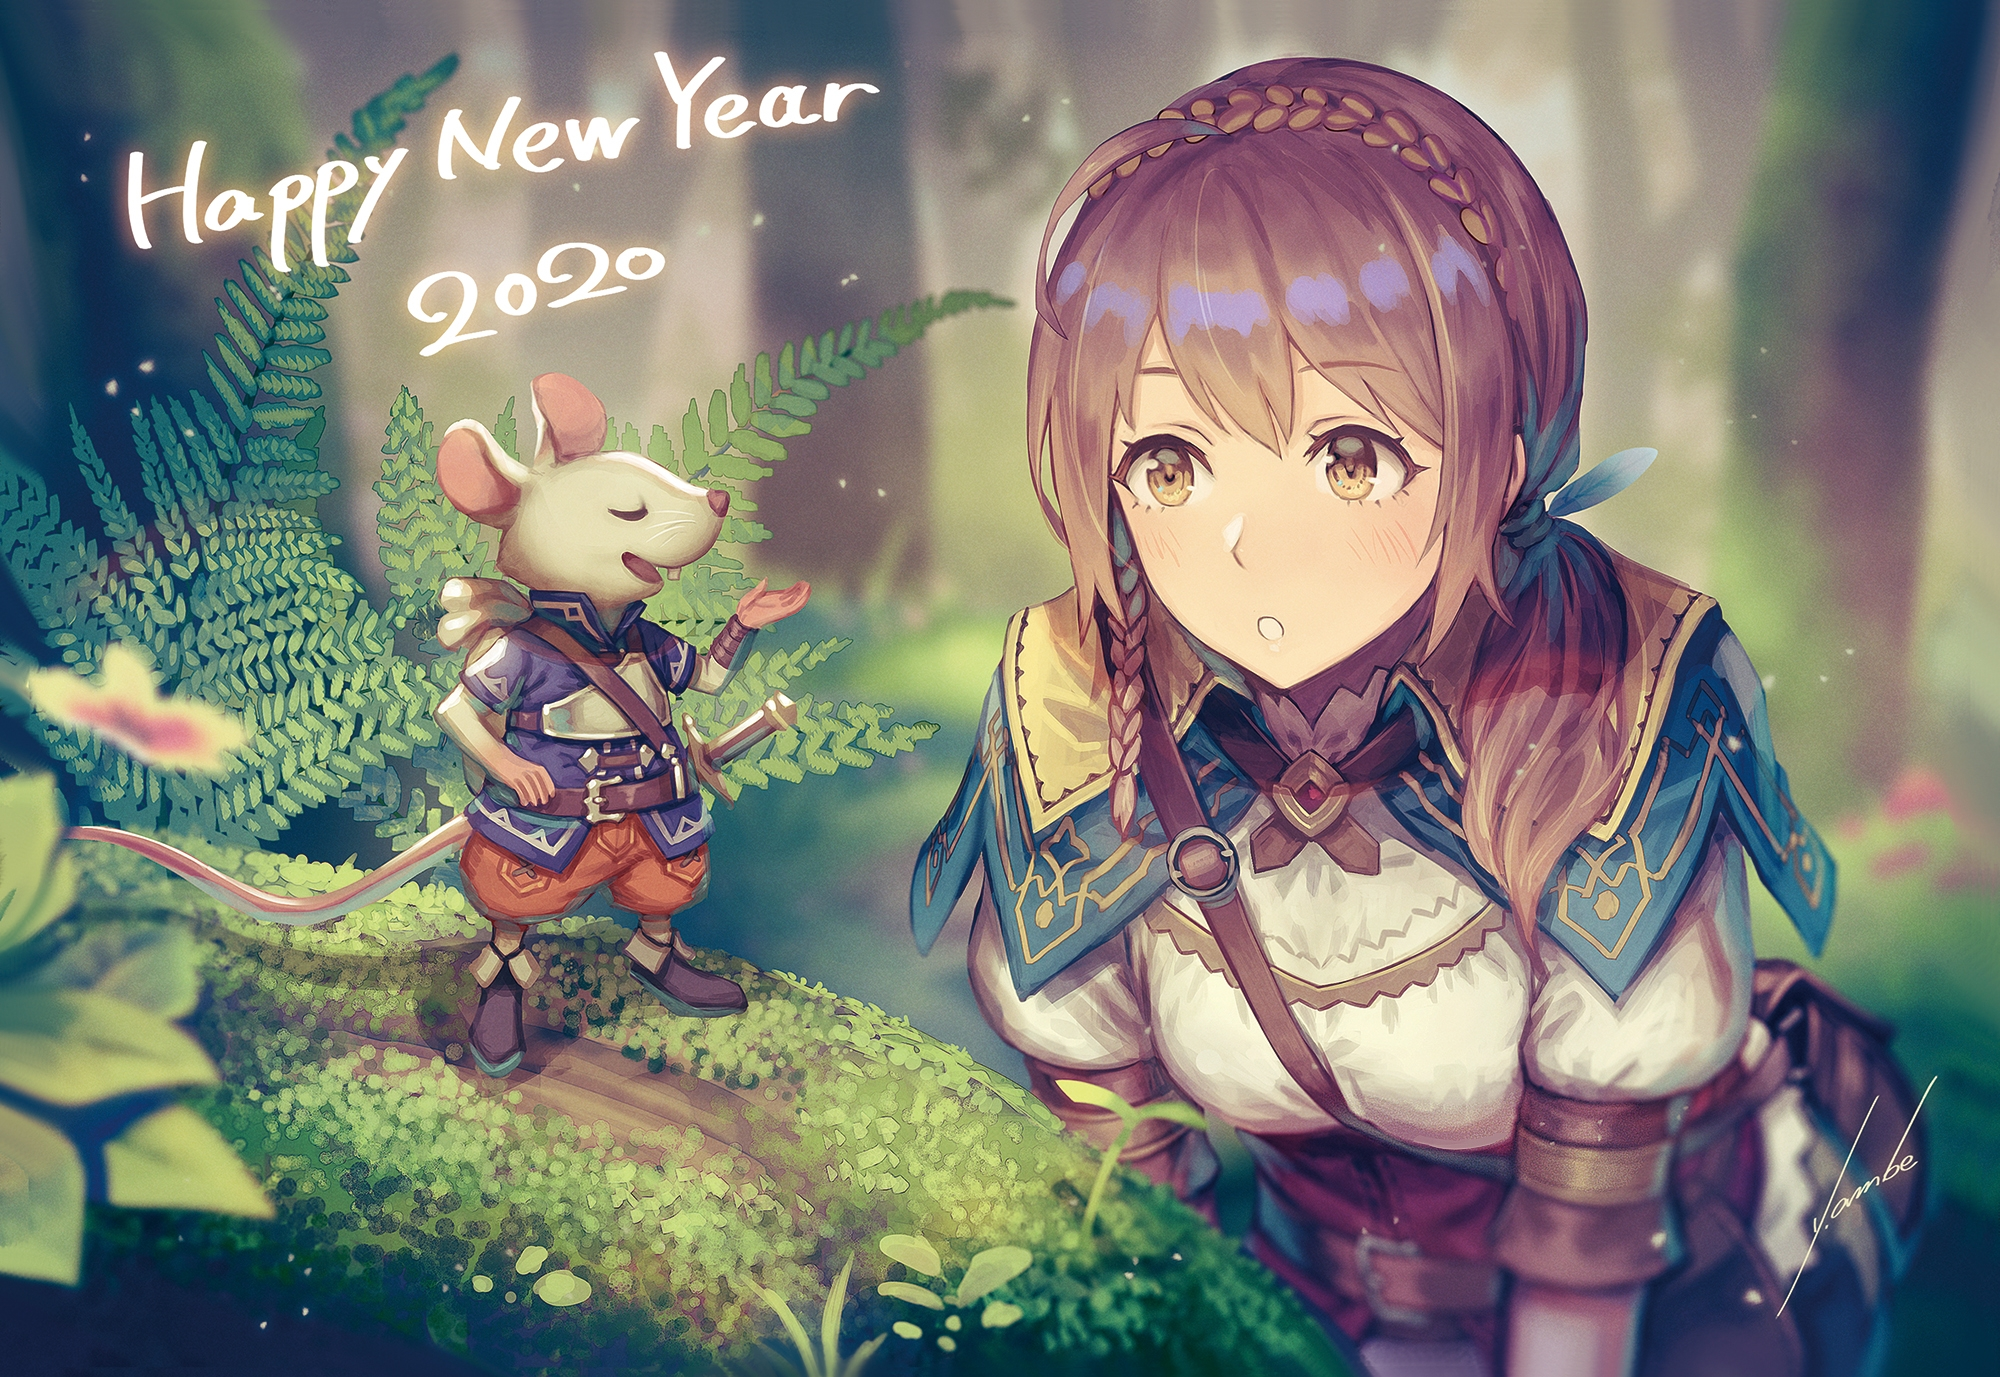 Download 2000x1377 Anime Girl Adventurer Forest Light Armor 2000x1377